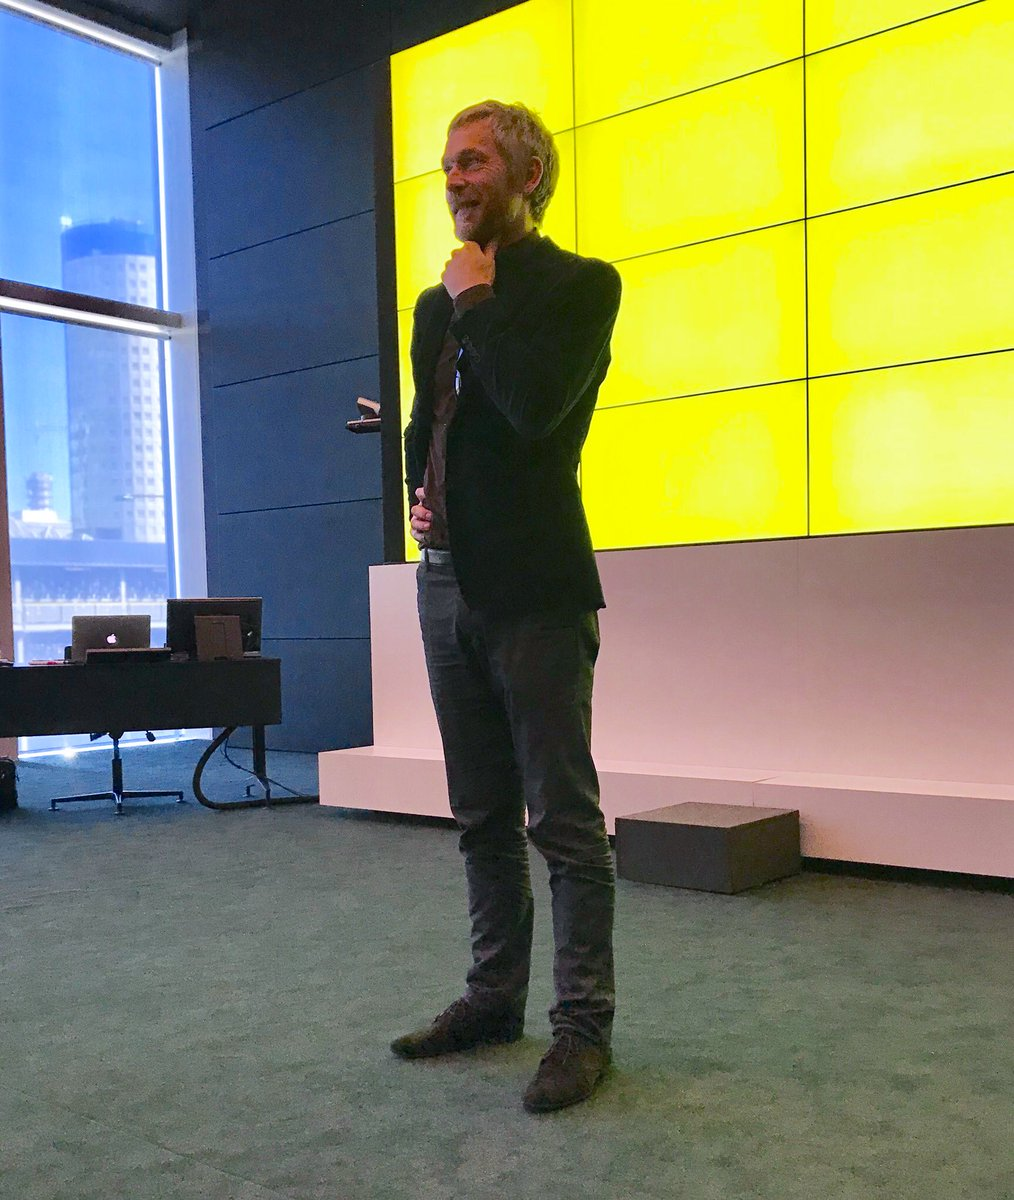 We invited Richard van der Laken of @WhatDesignCanDo  to talk today about the power of #design to transform society & help policy making to solve global challenges. #climatechange #cleanenergy #ConnectWithCulture @DutchMFA